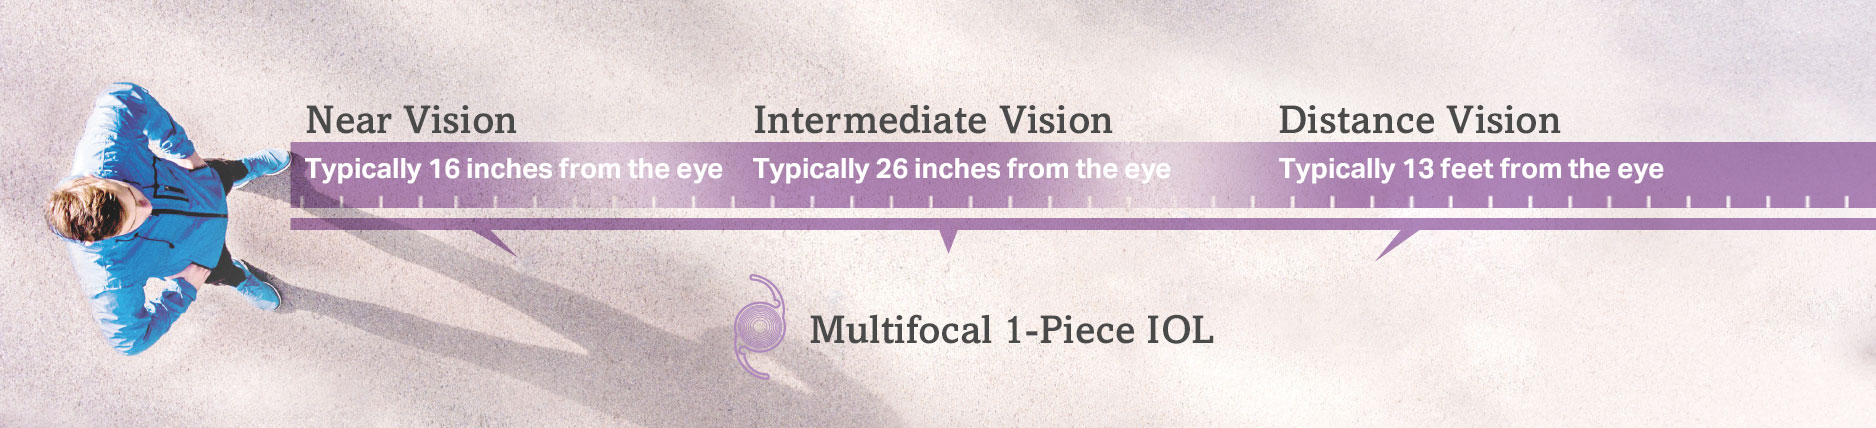 Man showing near, intermediate, and distance vision with Multifocal 1-Piece IOL